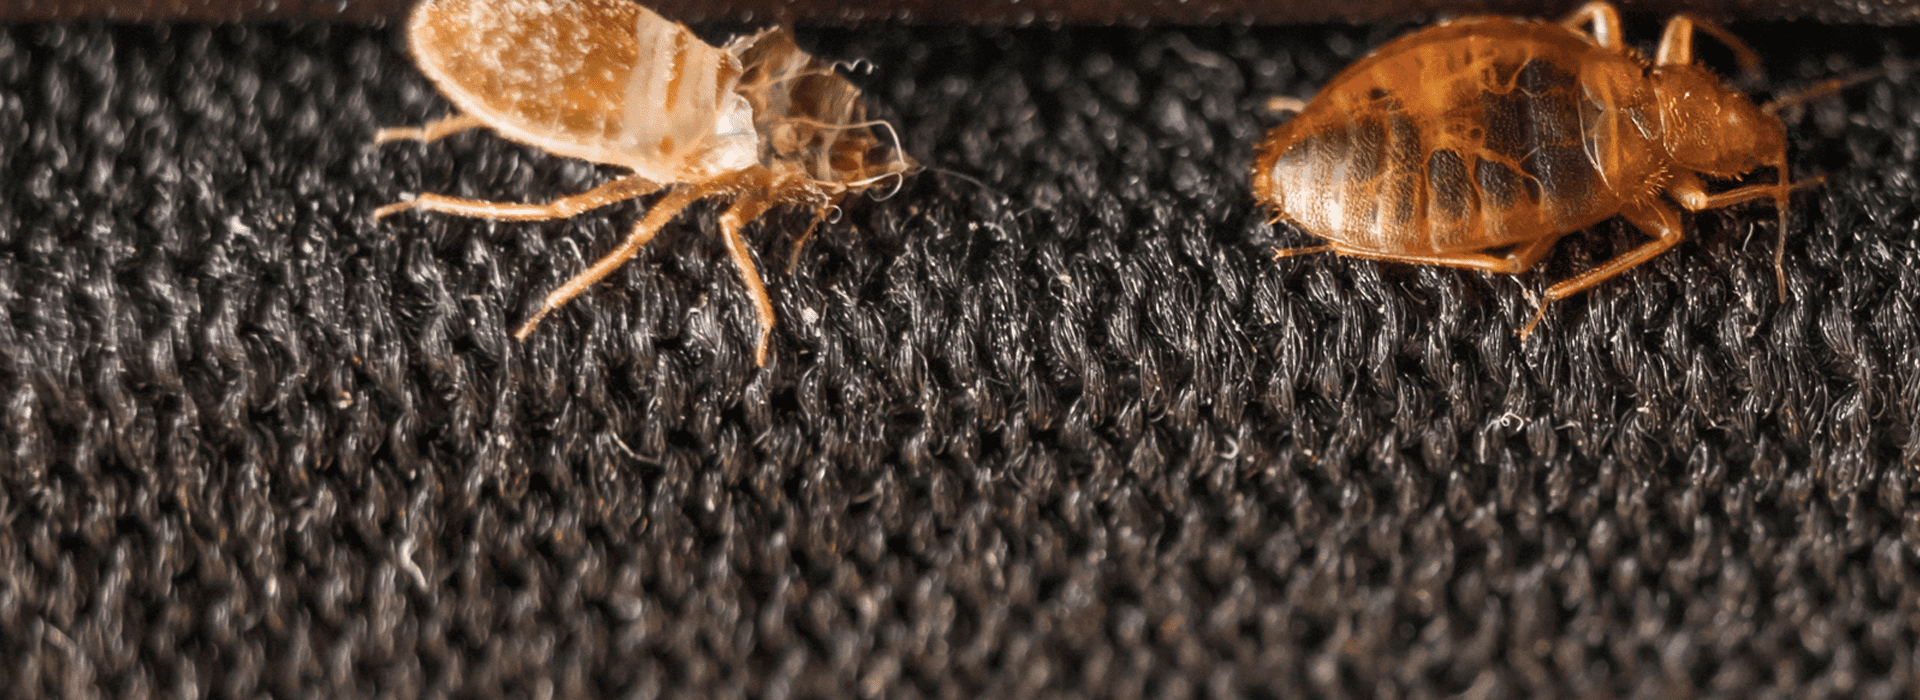 two bed bugs on a carpet in bradenton florida home